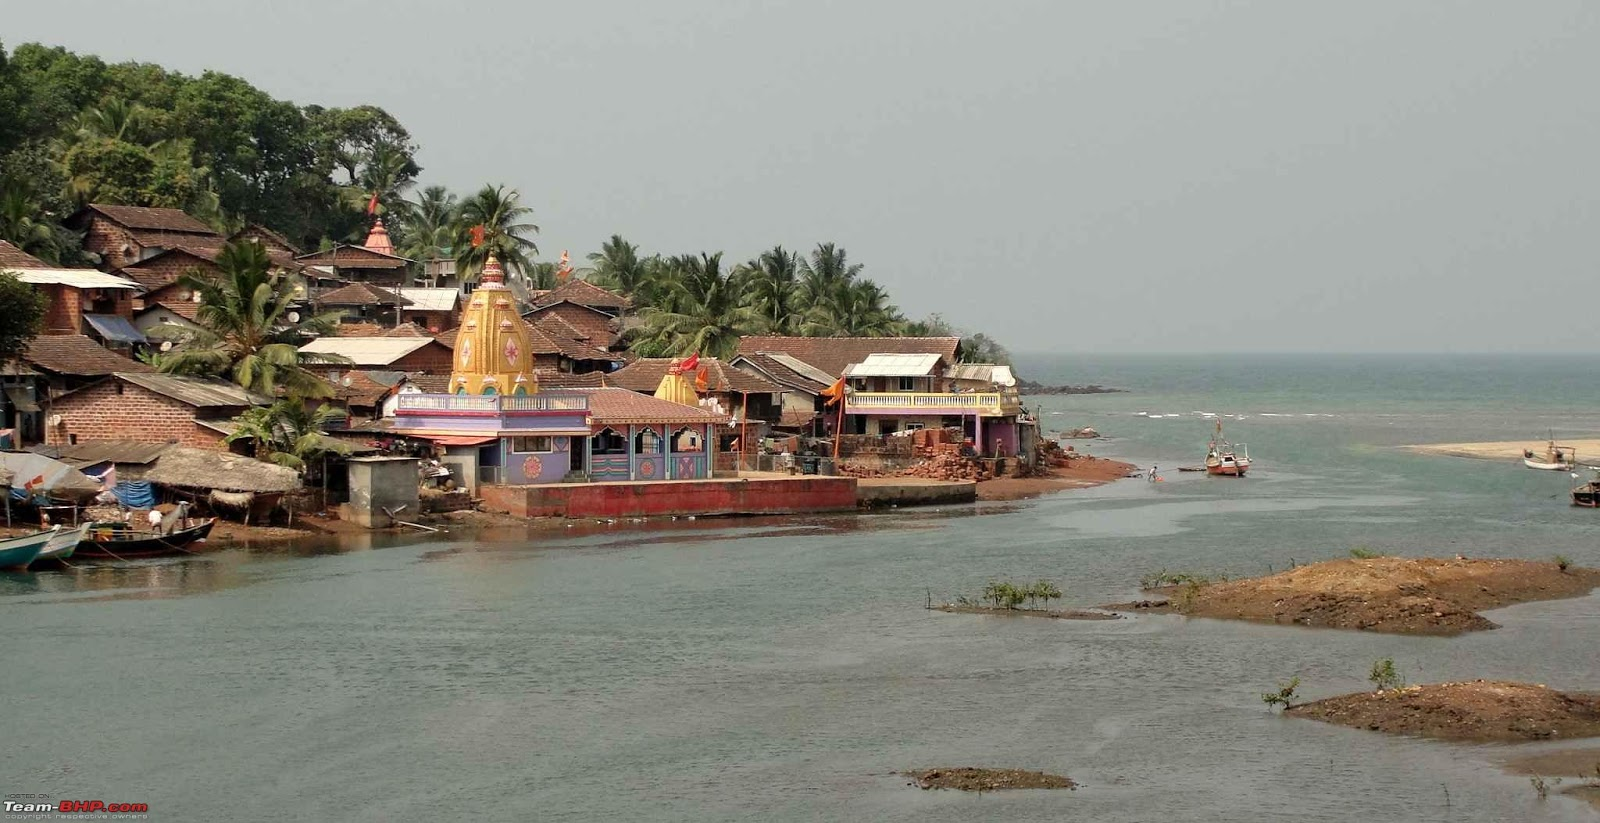 Kokan darshan photo gallery